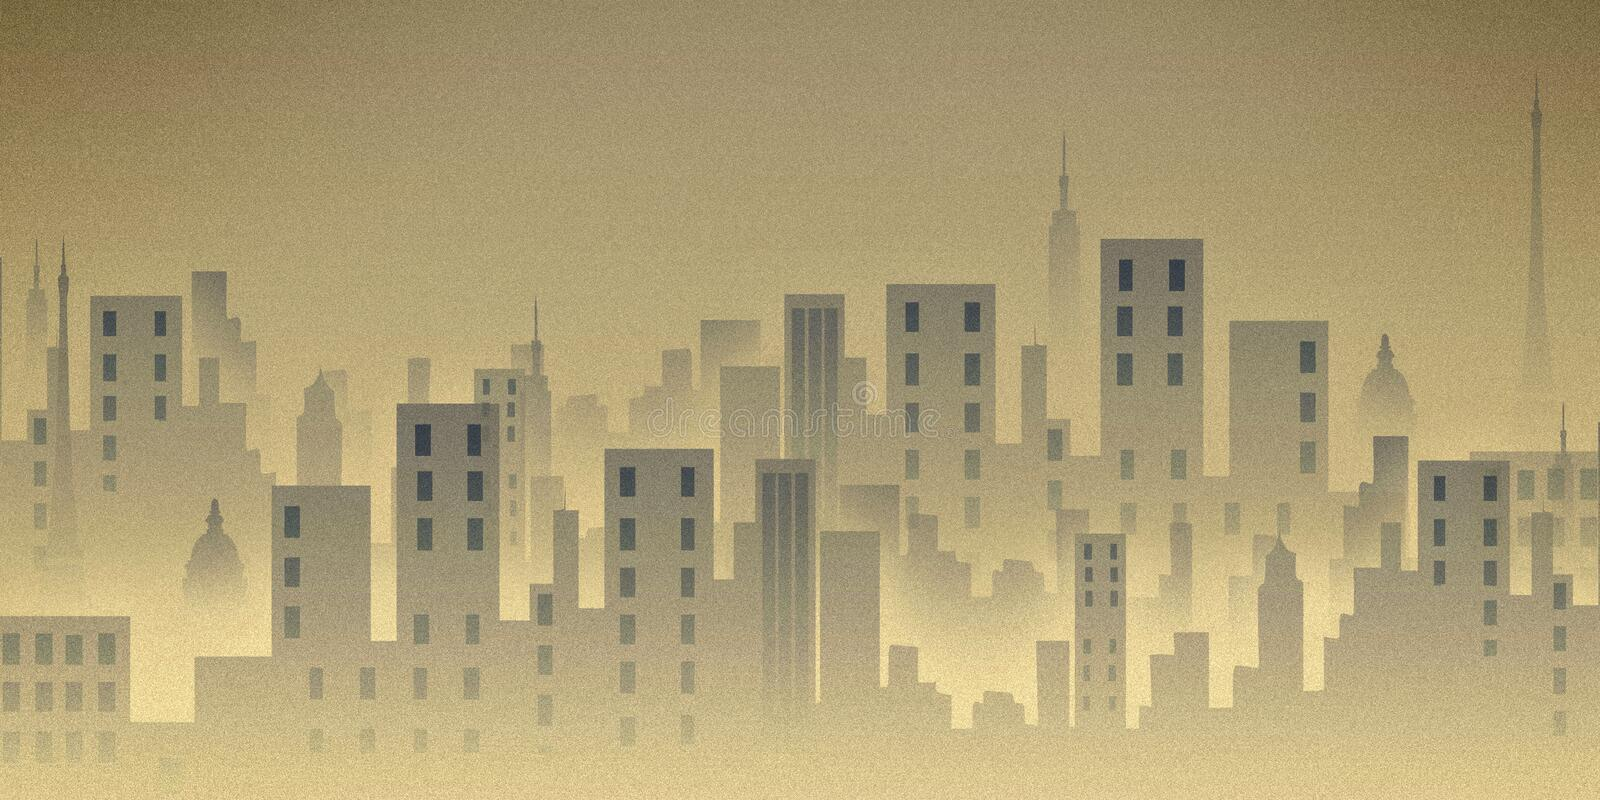 City scape, illustration, buildings. Textured city view illustration having tall buildings stock illustration